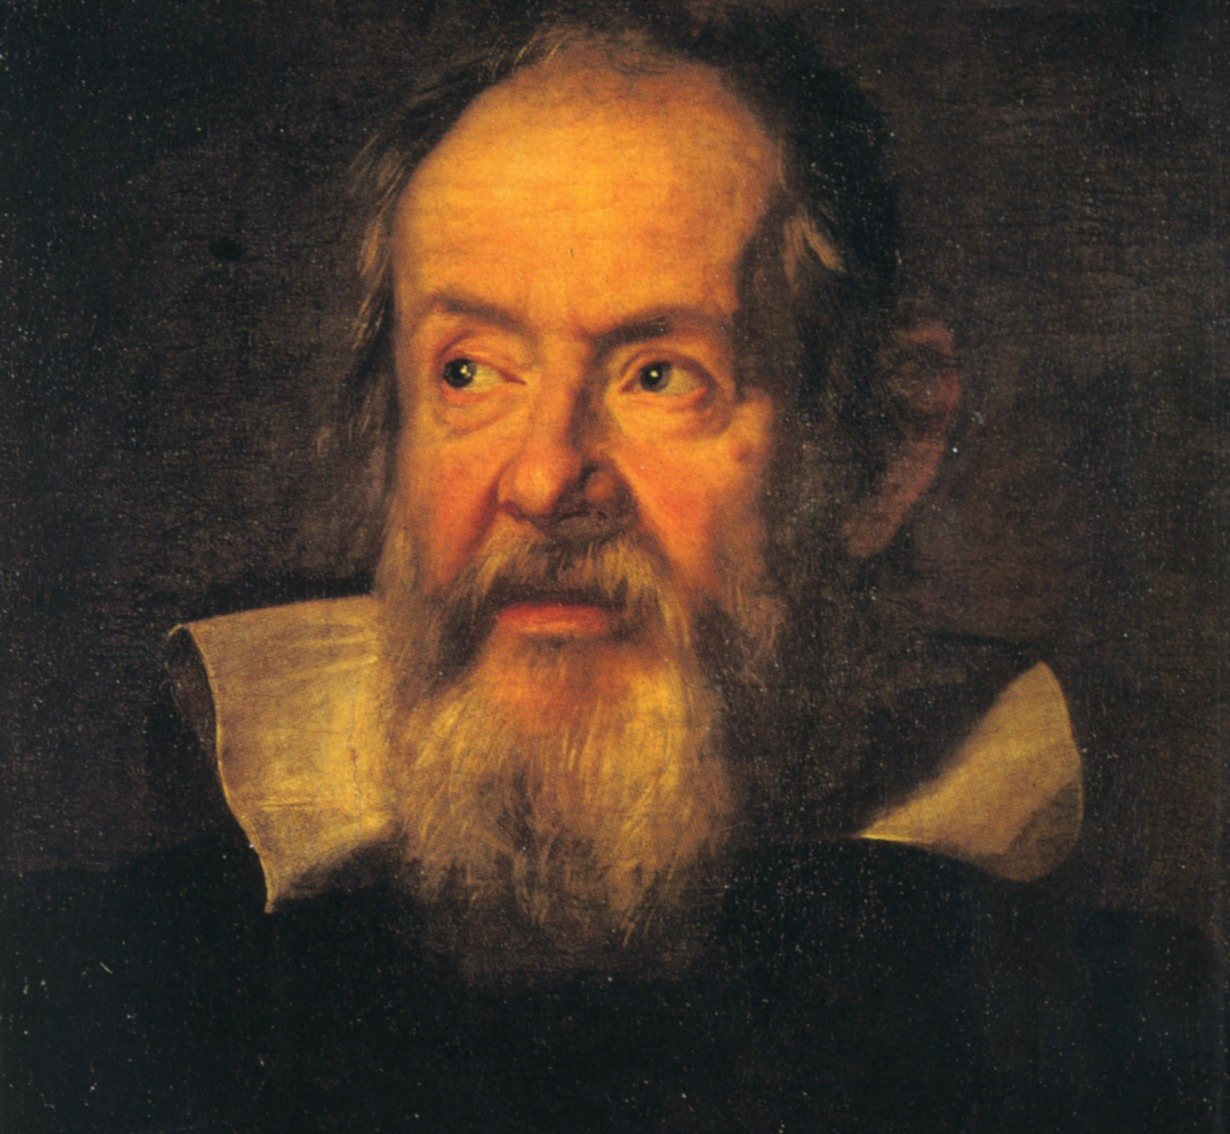 Galileo-sustermans2.jpg (1230×1134)